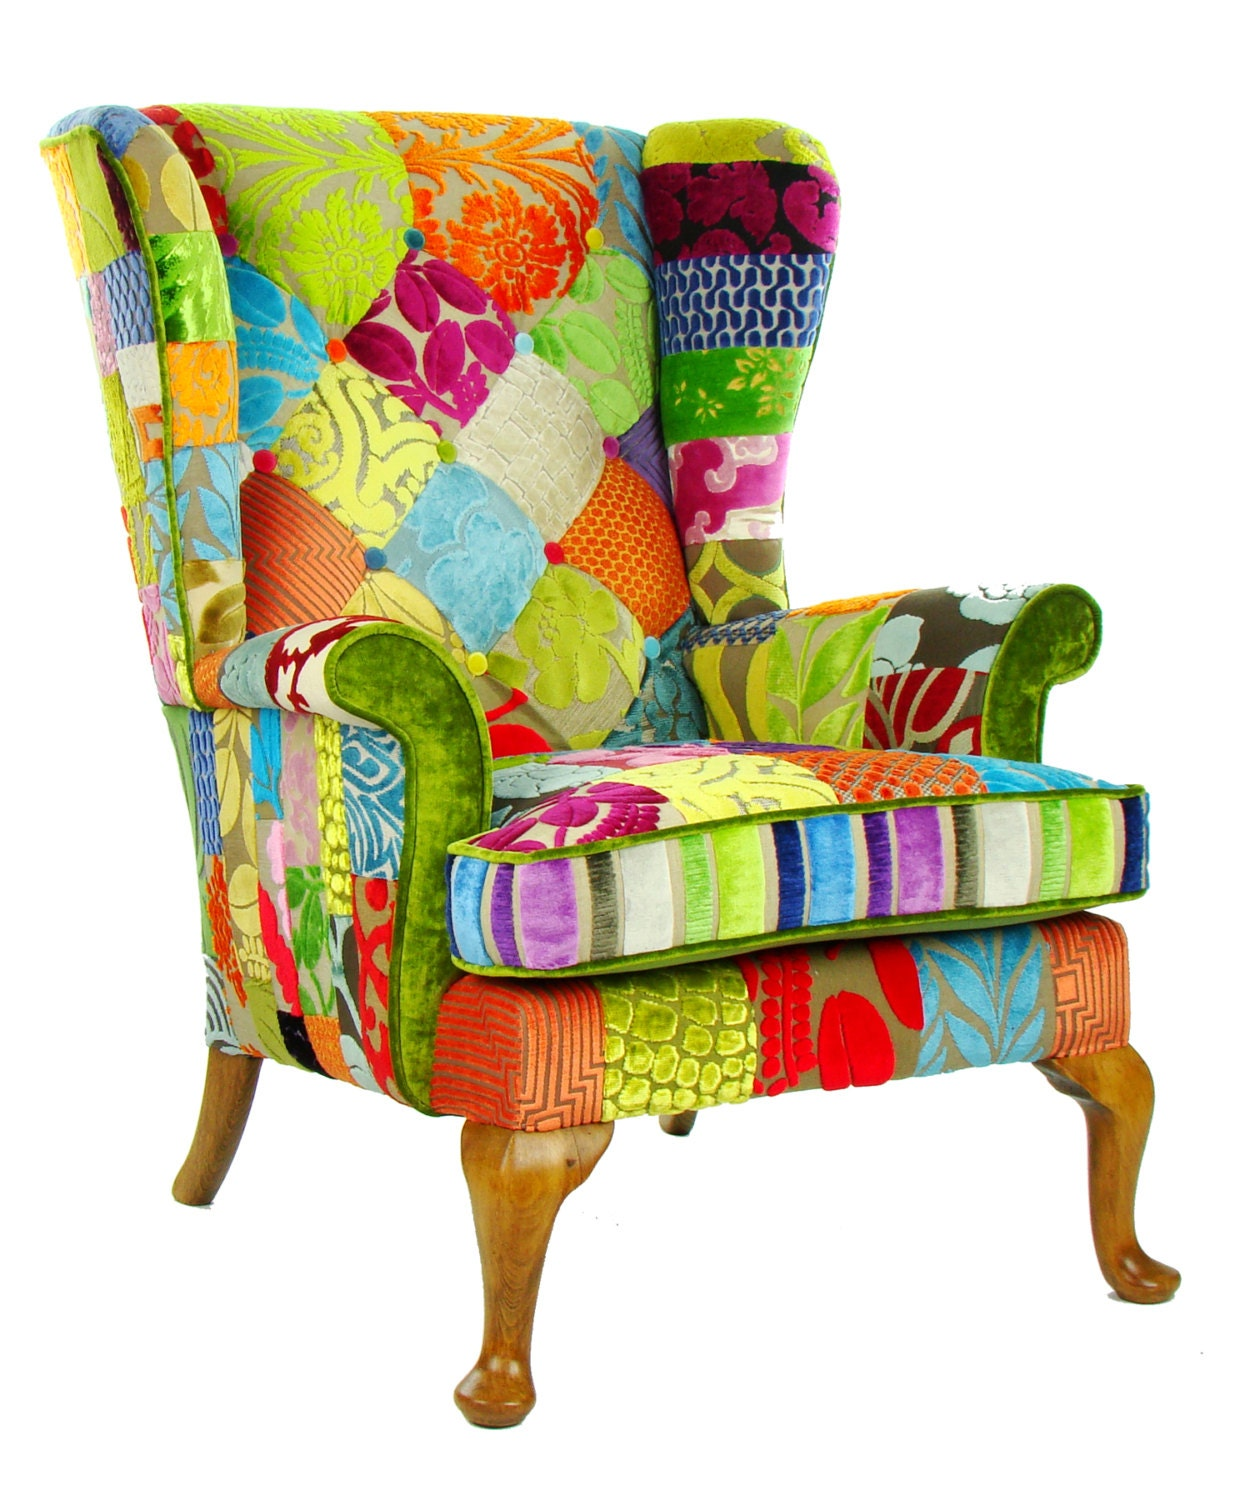 Patchwork parker knoll armchair designers guild fabric - Fauteuil crapaud patchwork ...